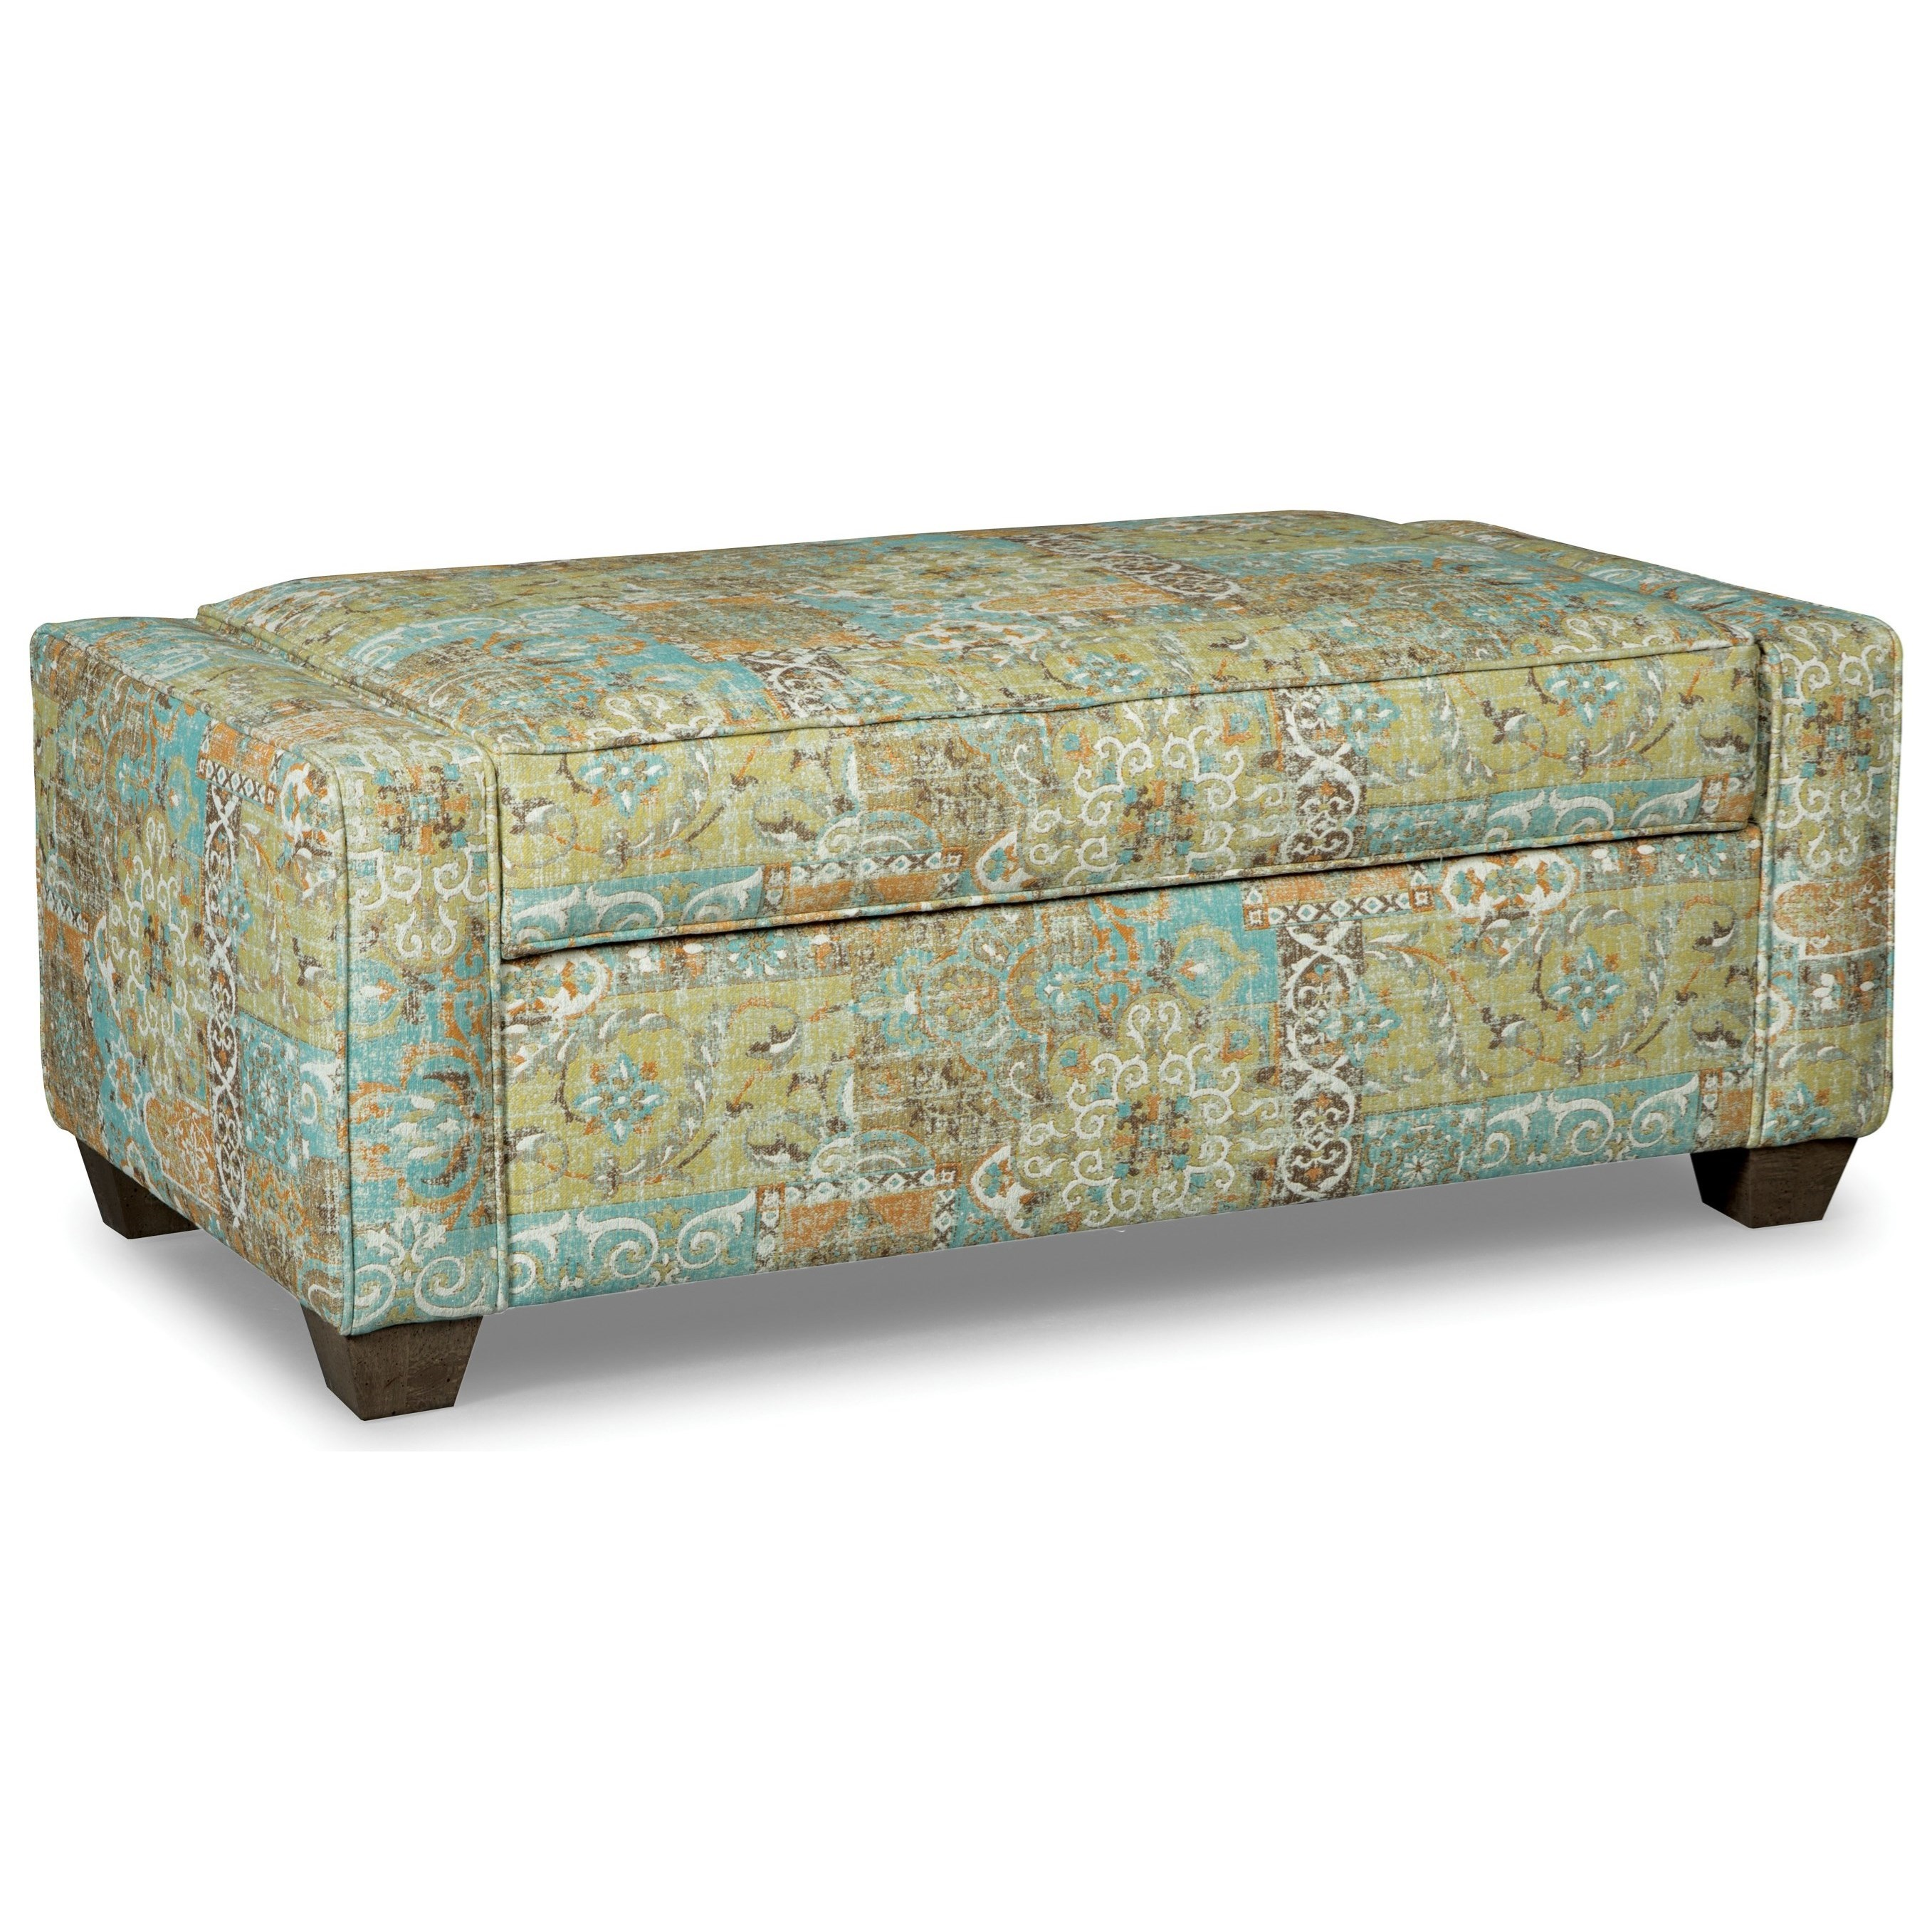 Pleasant Craftmaster Accent Ottomans 064600S Lift Top Storage Ottoman Pabps2019 Chair Design Images Pabps2019Com